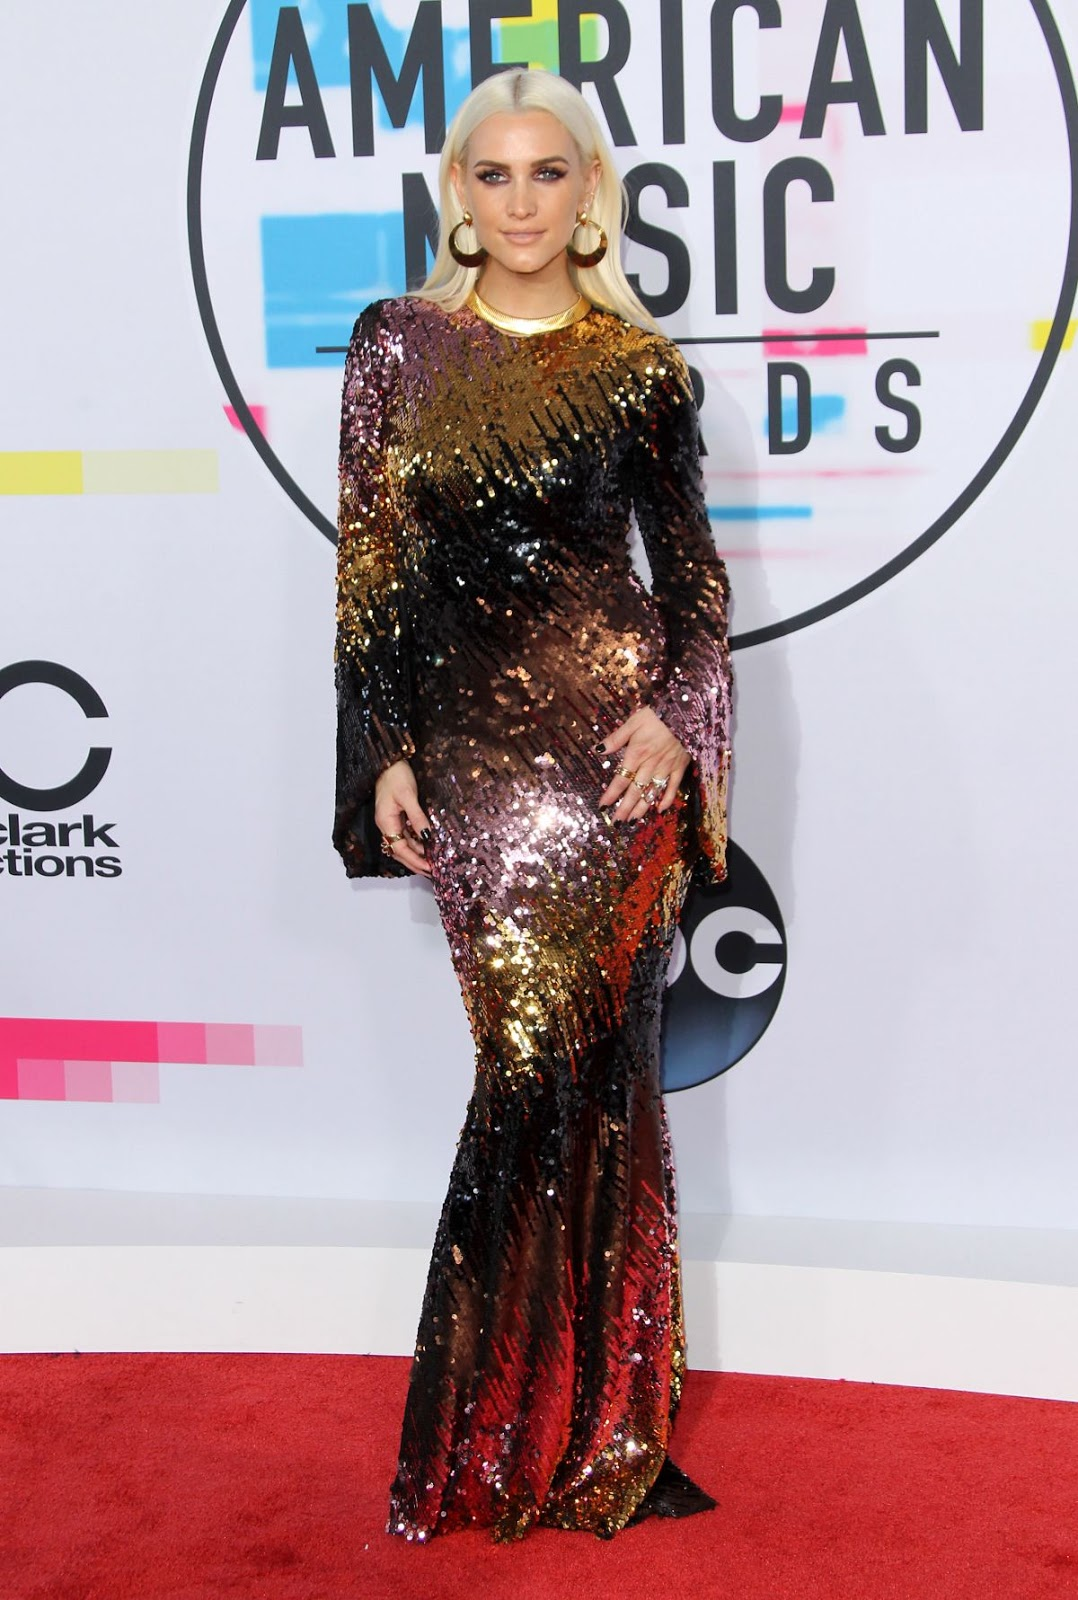 Photos of Ashlee Simpson at American Music Awards 2017 at Microsoft Theater in Los Angeles